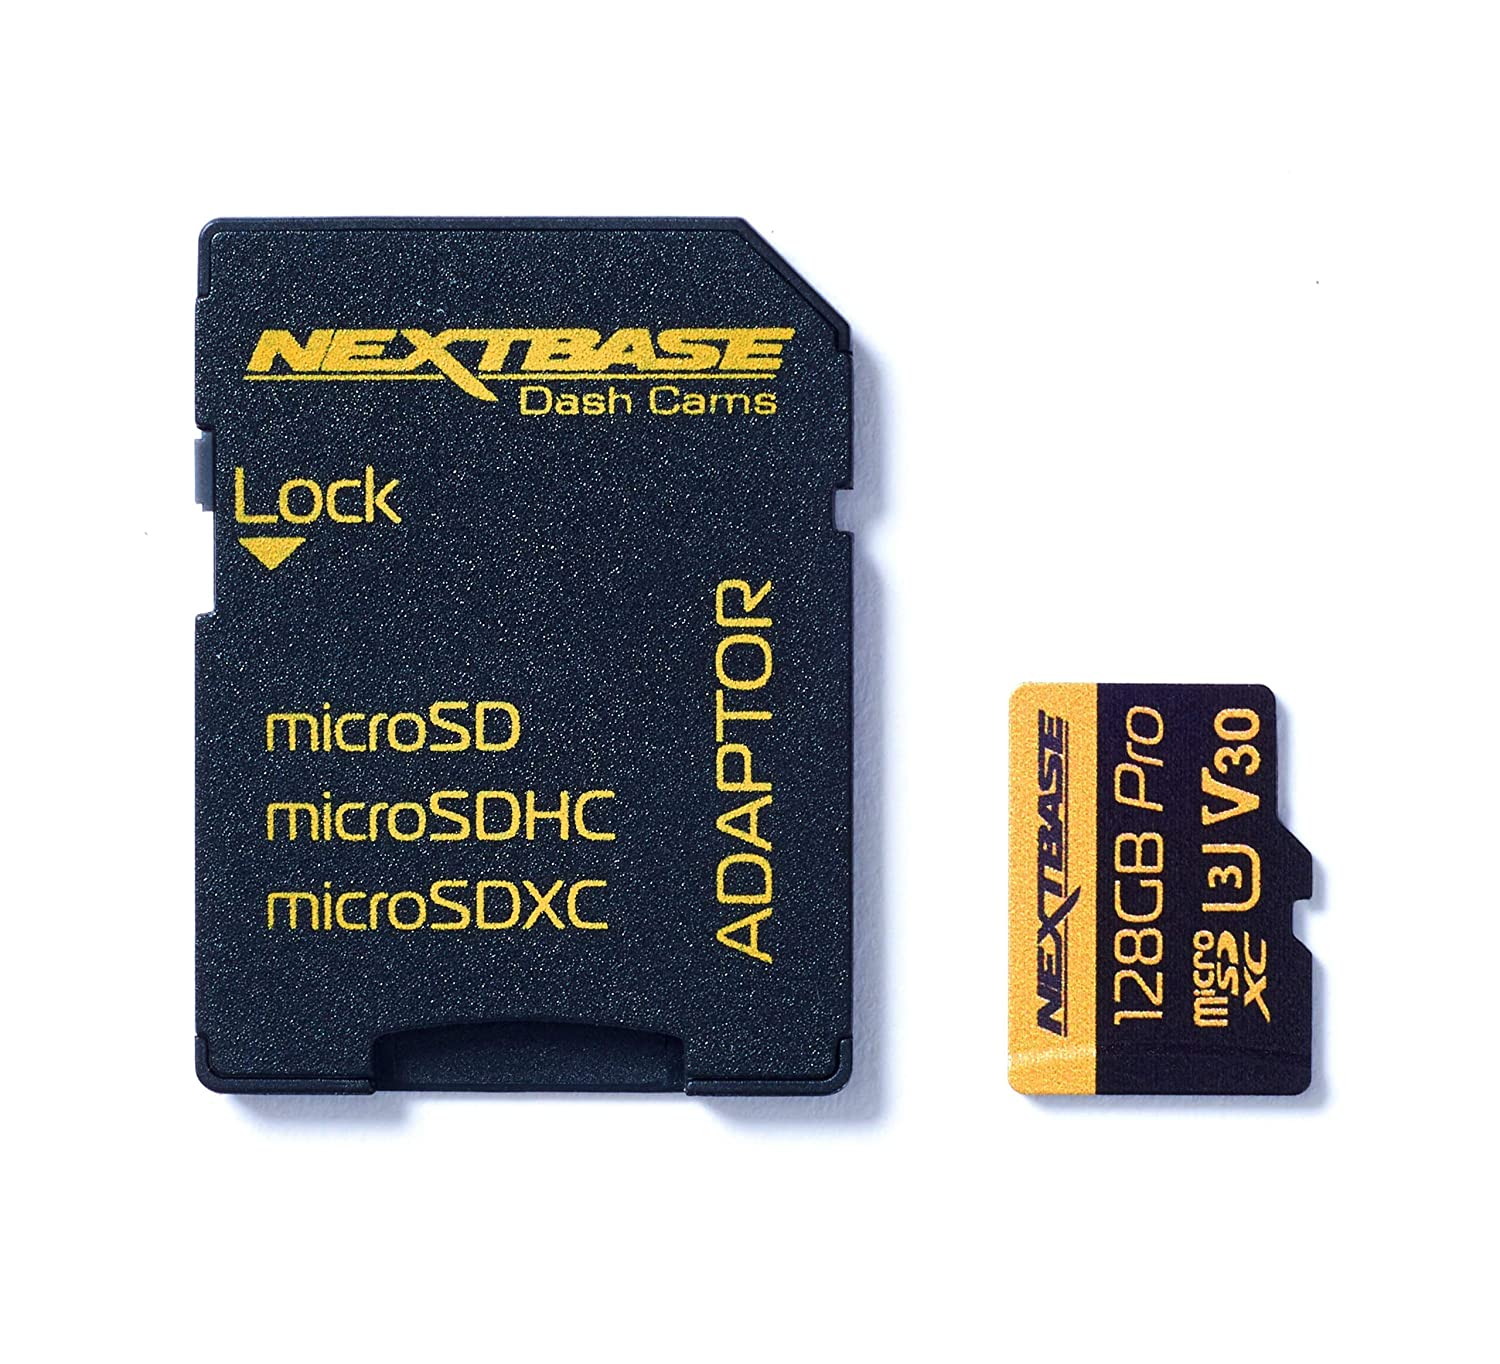 With Adapter Nextbase 64GB U3 Micro SD Memory Card Compatible with Nextbase In-Car Dash Cams Series 1 and 2